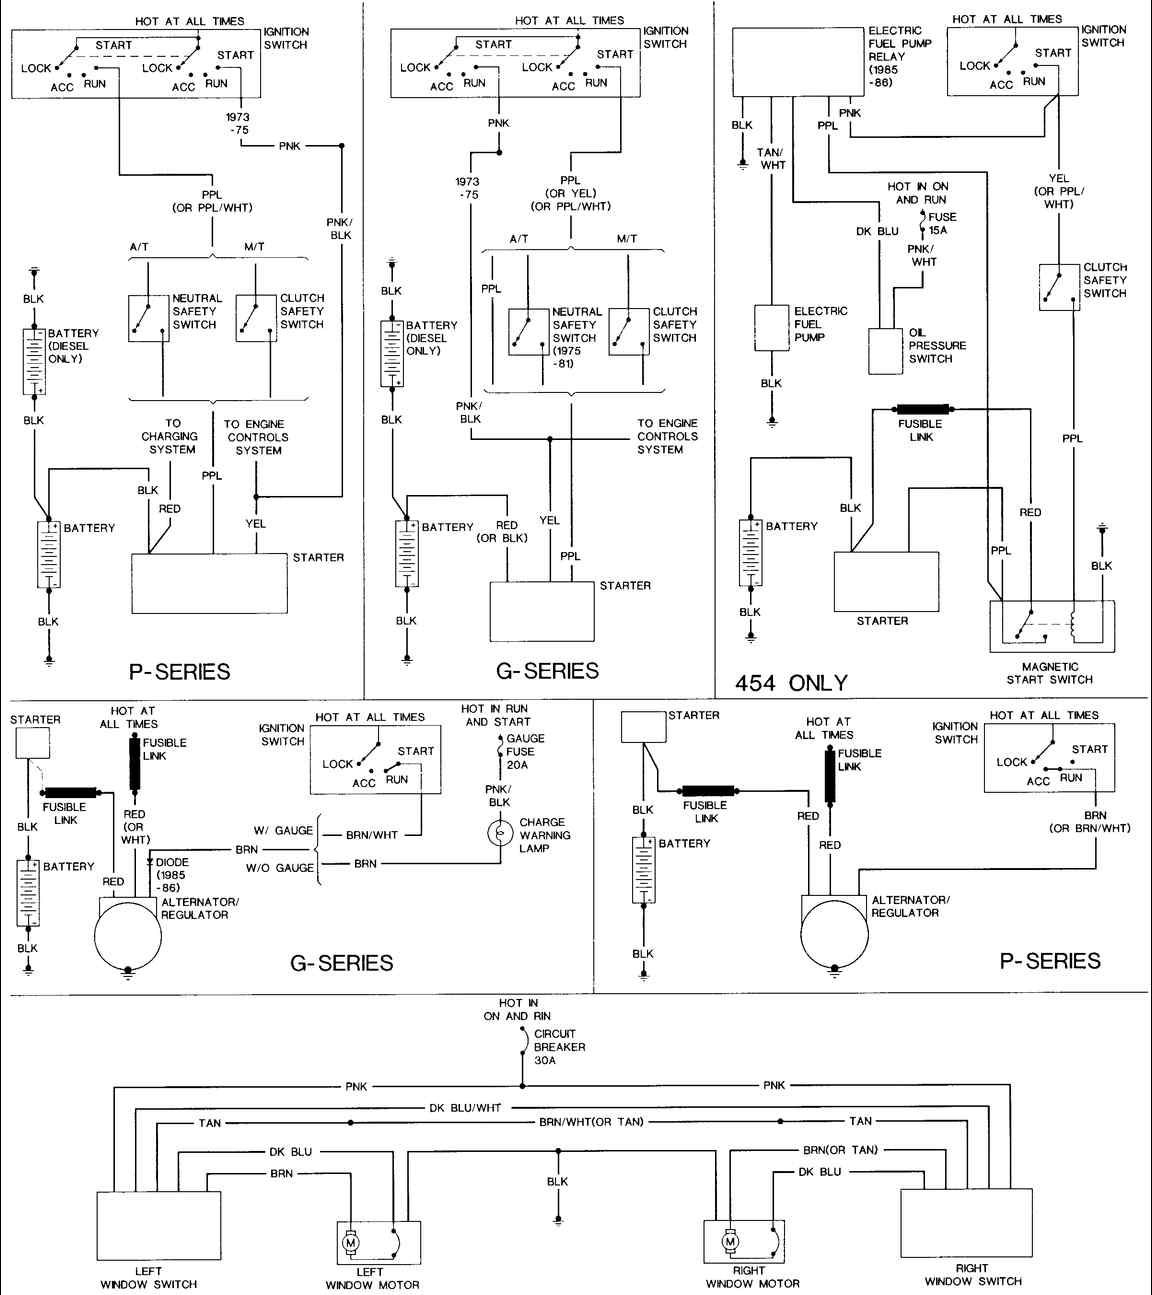 0c73623a181dc376dbb4777e2029d285 85 chevy truck wiring diagram 85 chevy van the steering column 1993 Chevy Wiring Diagram at suagrazia.org